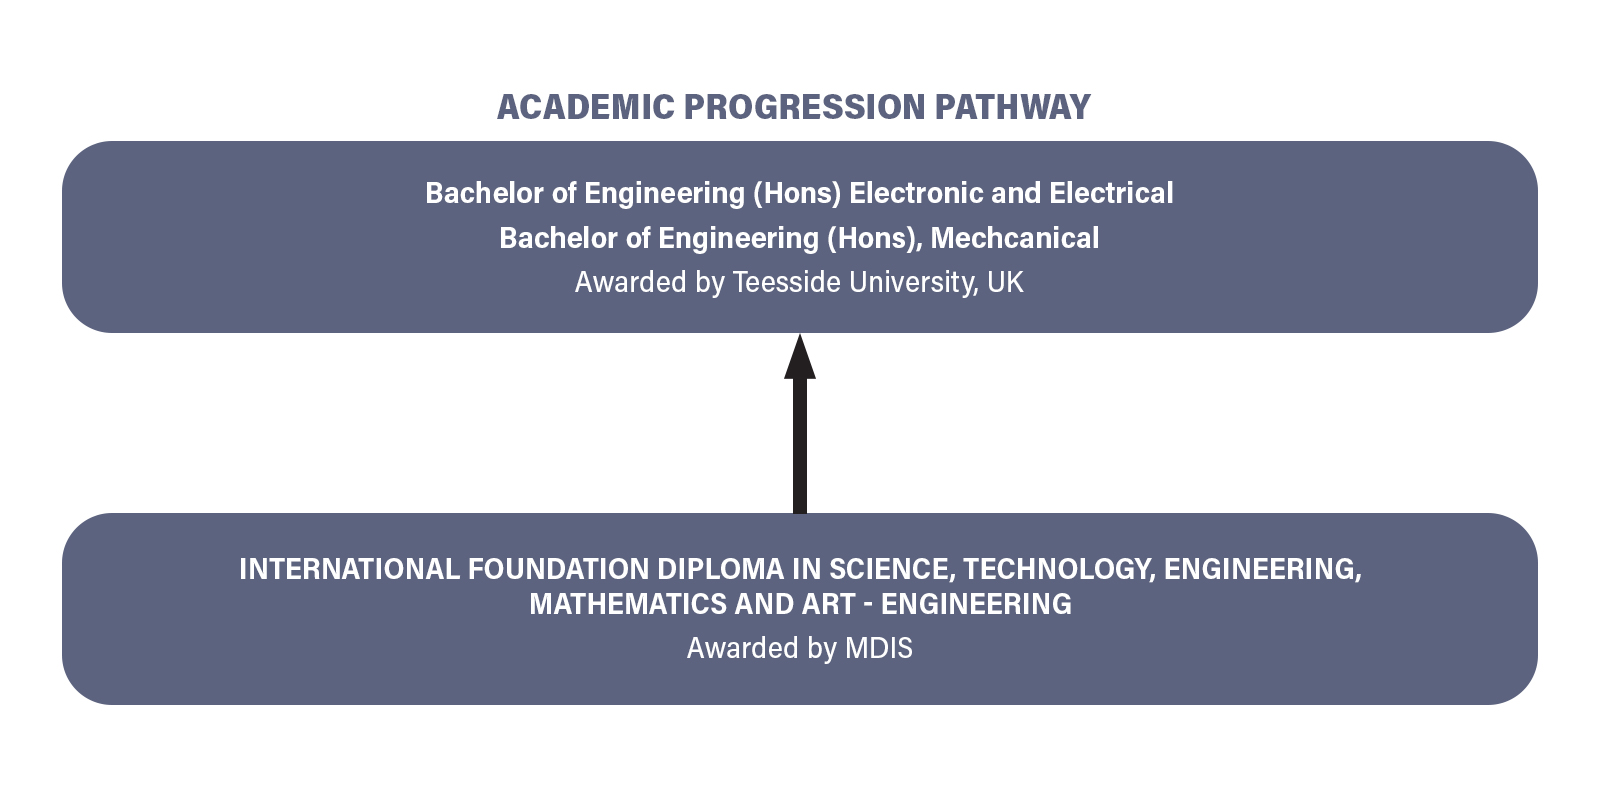 Bachelor of Engineering (Hons) Electronic and Electrical